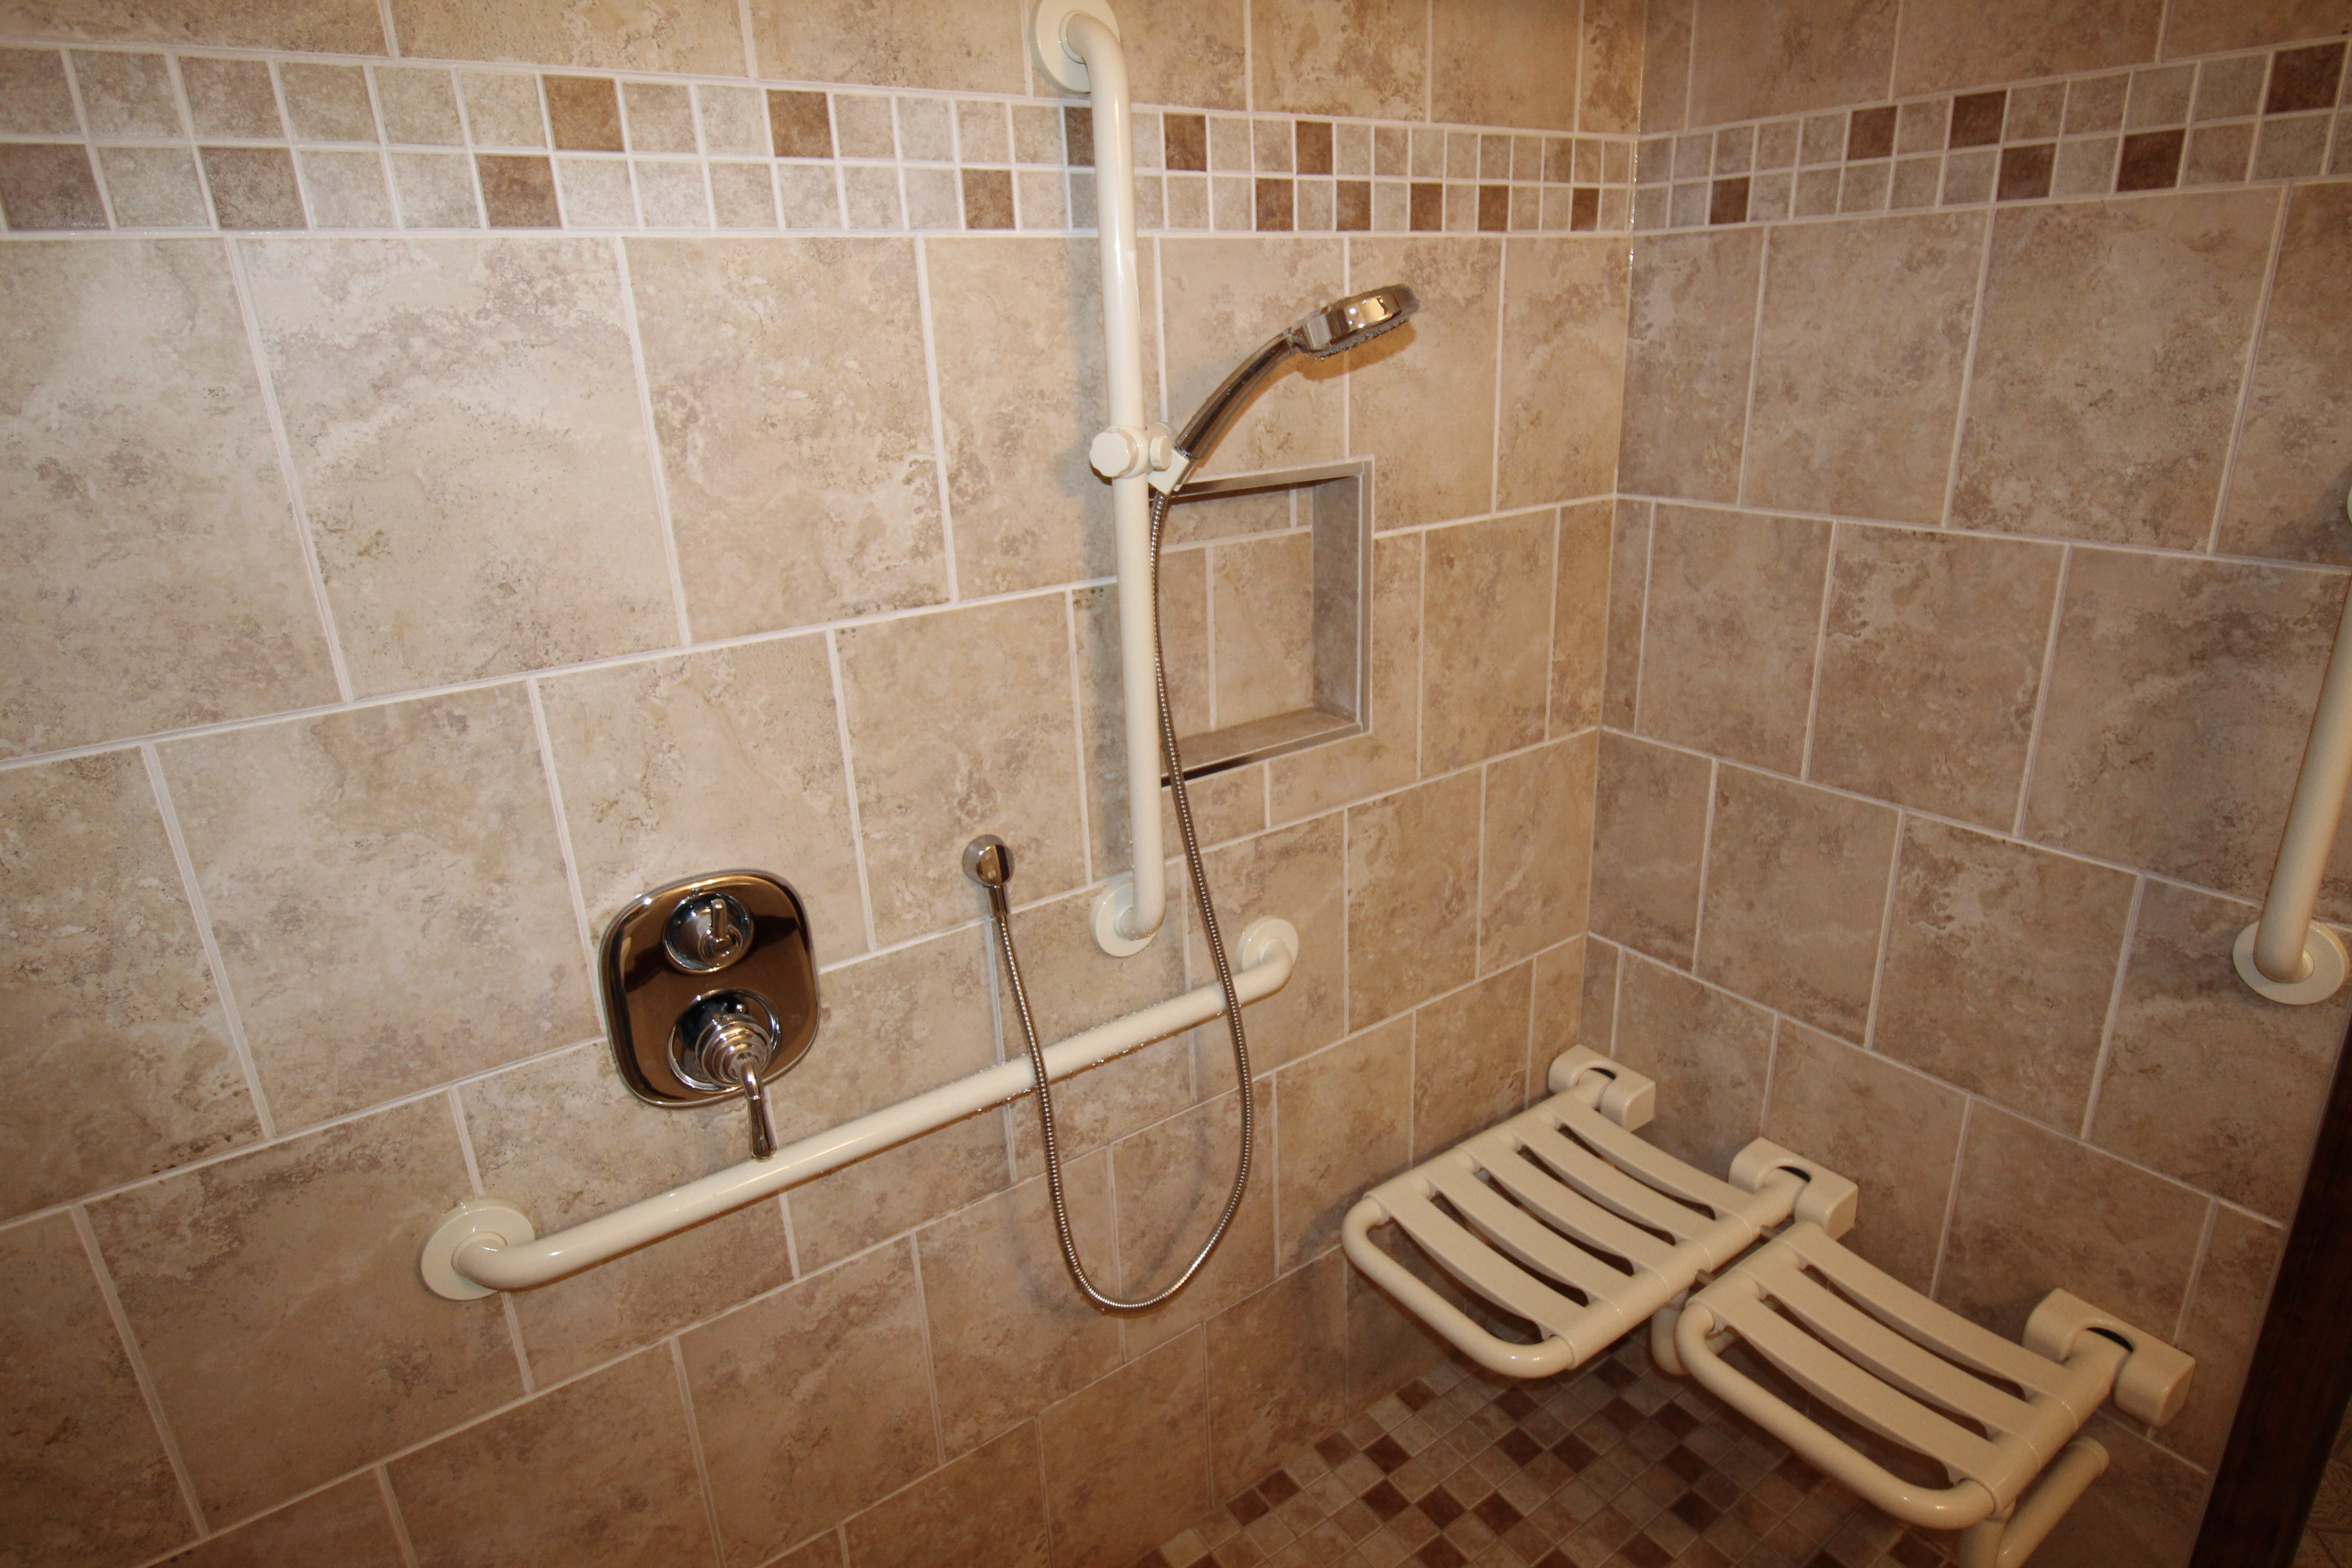 Two grab bars in a tile shower